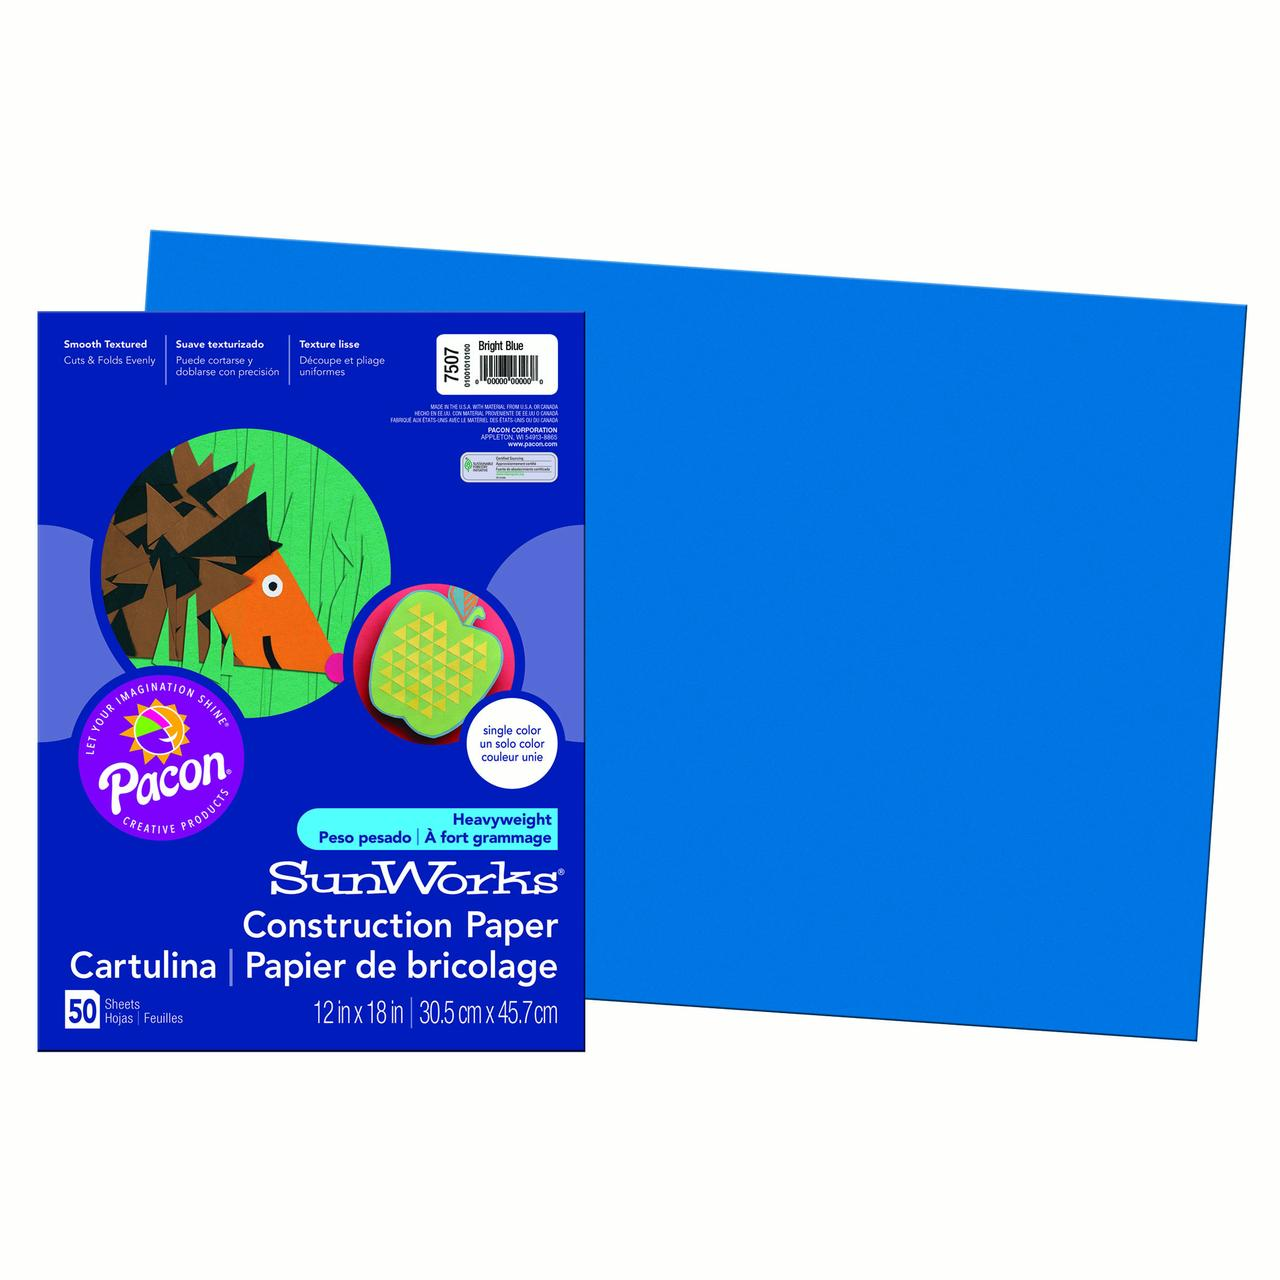 "Pacon® SunWorks® Construction Paper, 12"" x 18"", Bright Blue - 50 Sheets per pack, 10 packs"